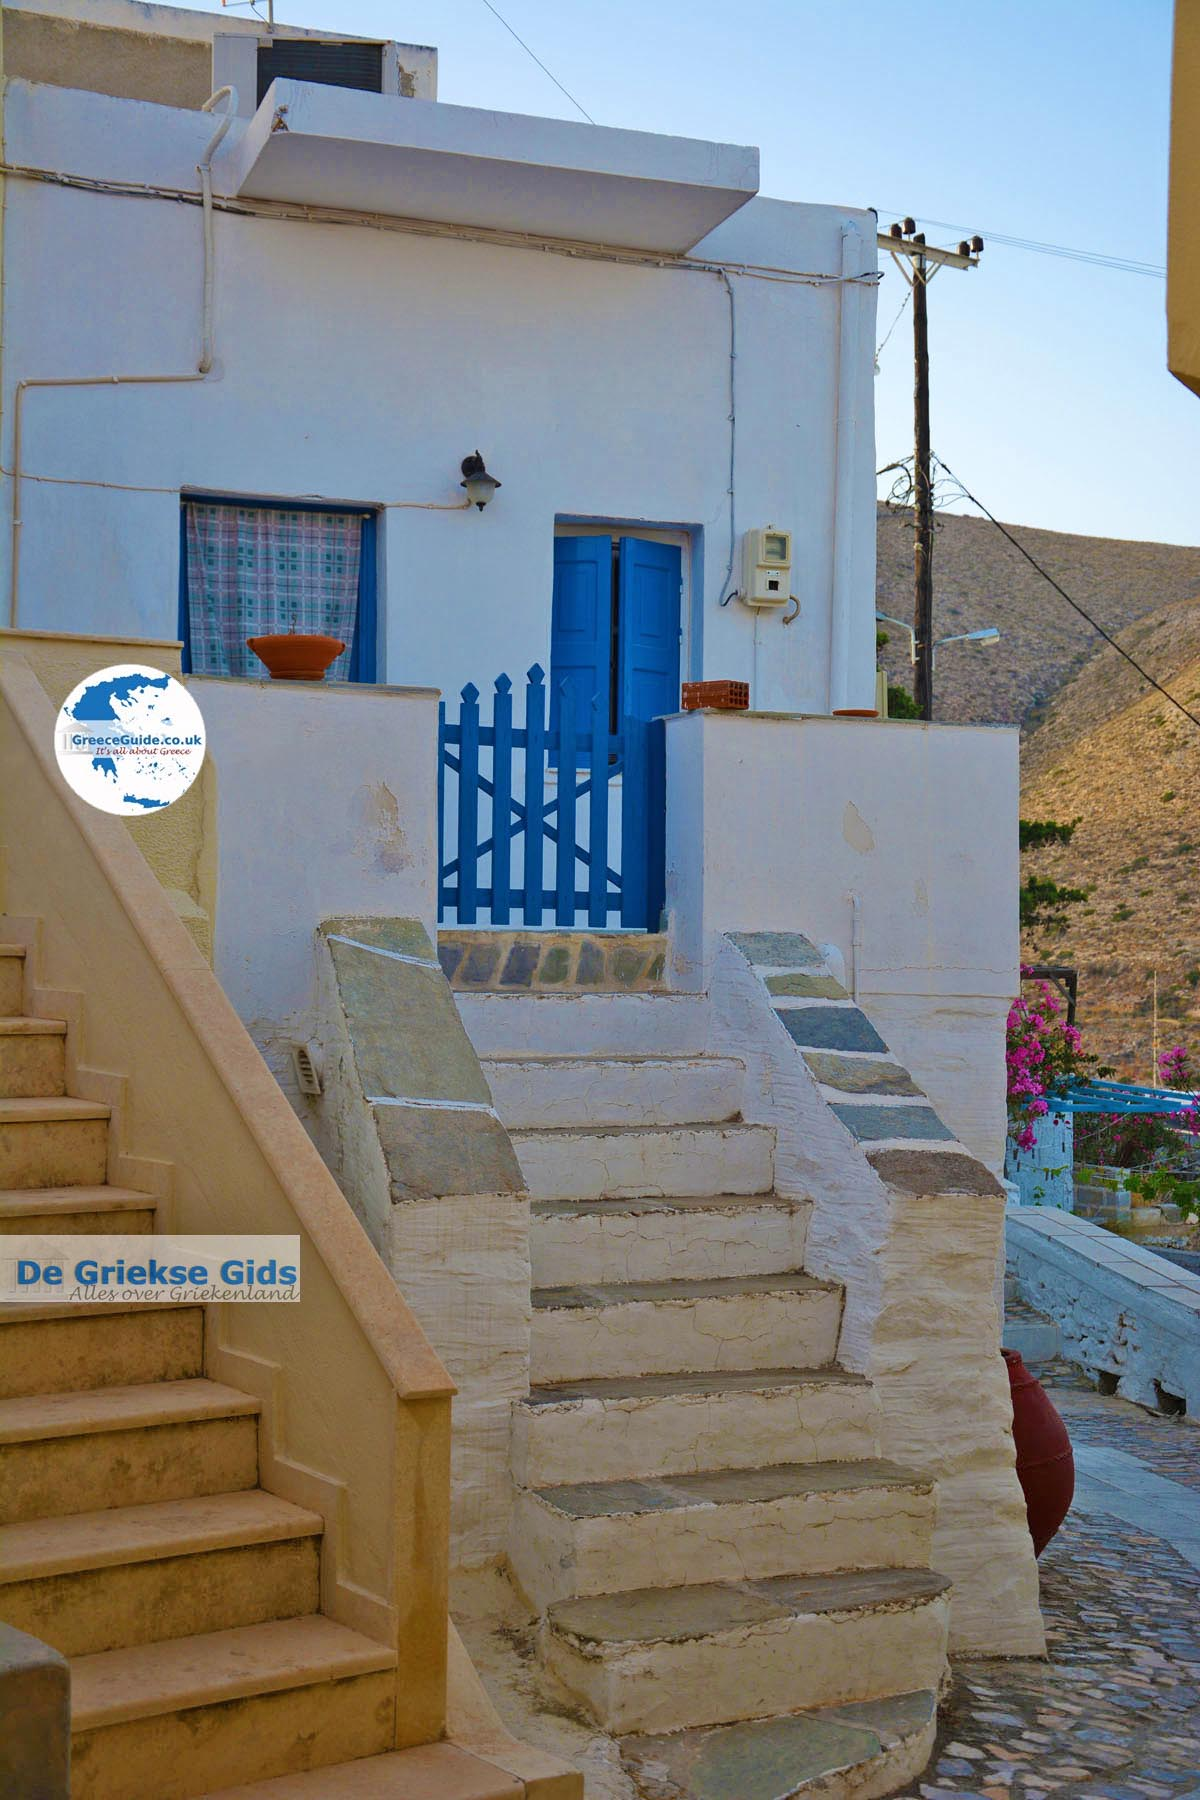 Ano syros syros holidays in ano syros greece guide for 12 joy terrace malden ma